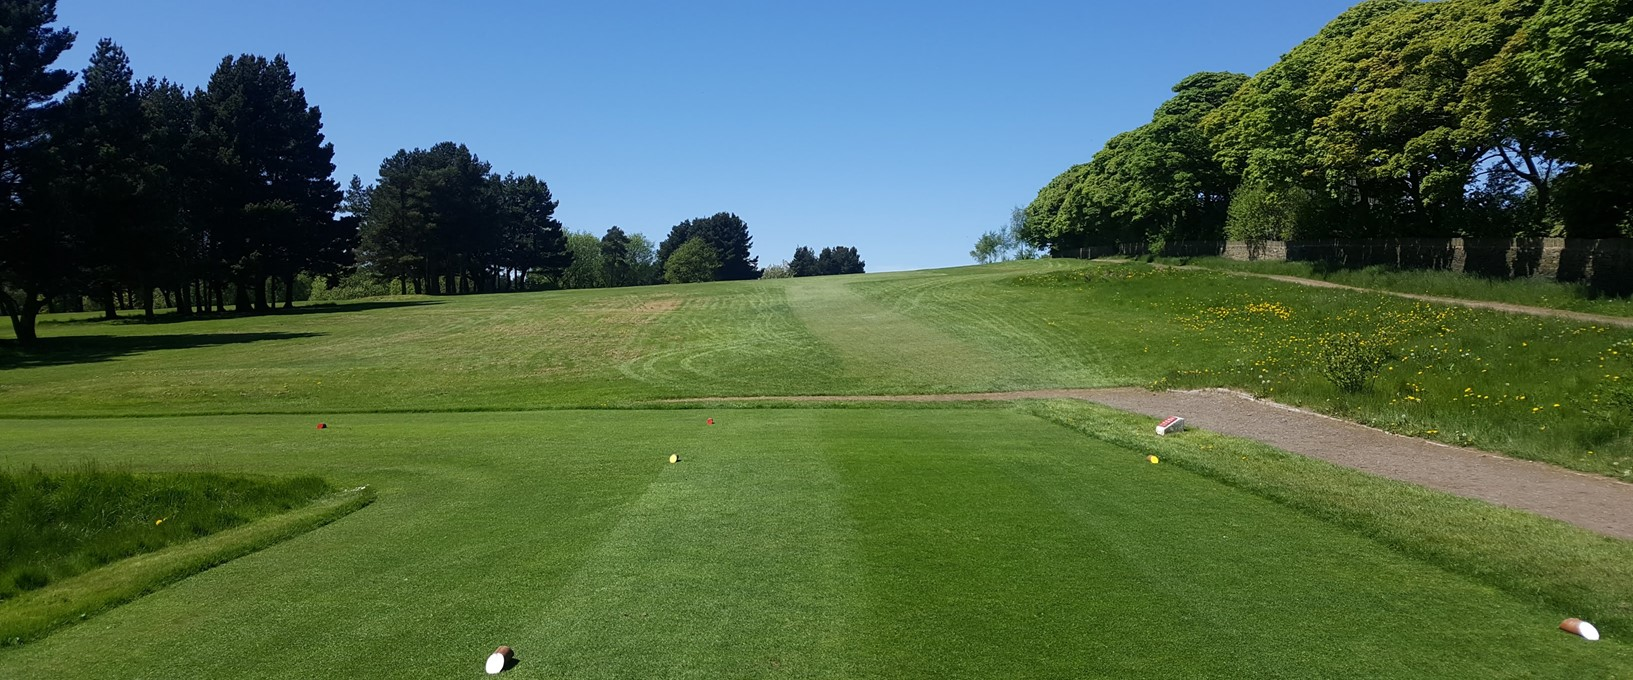 Tee box on Hole 3, West Bradford Golf Club